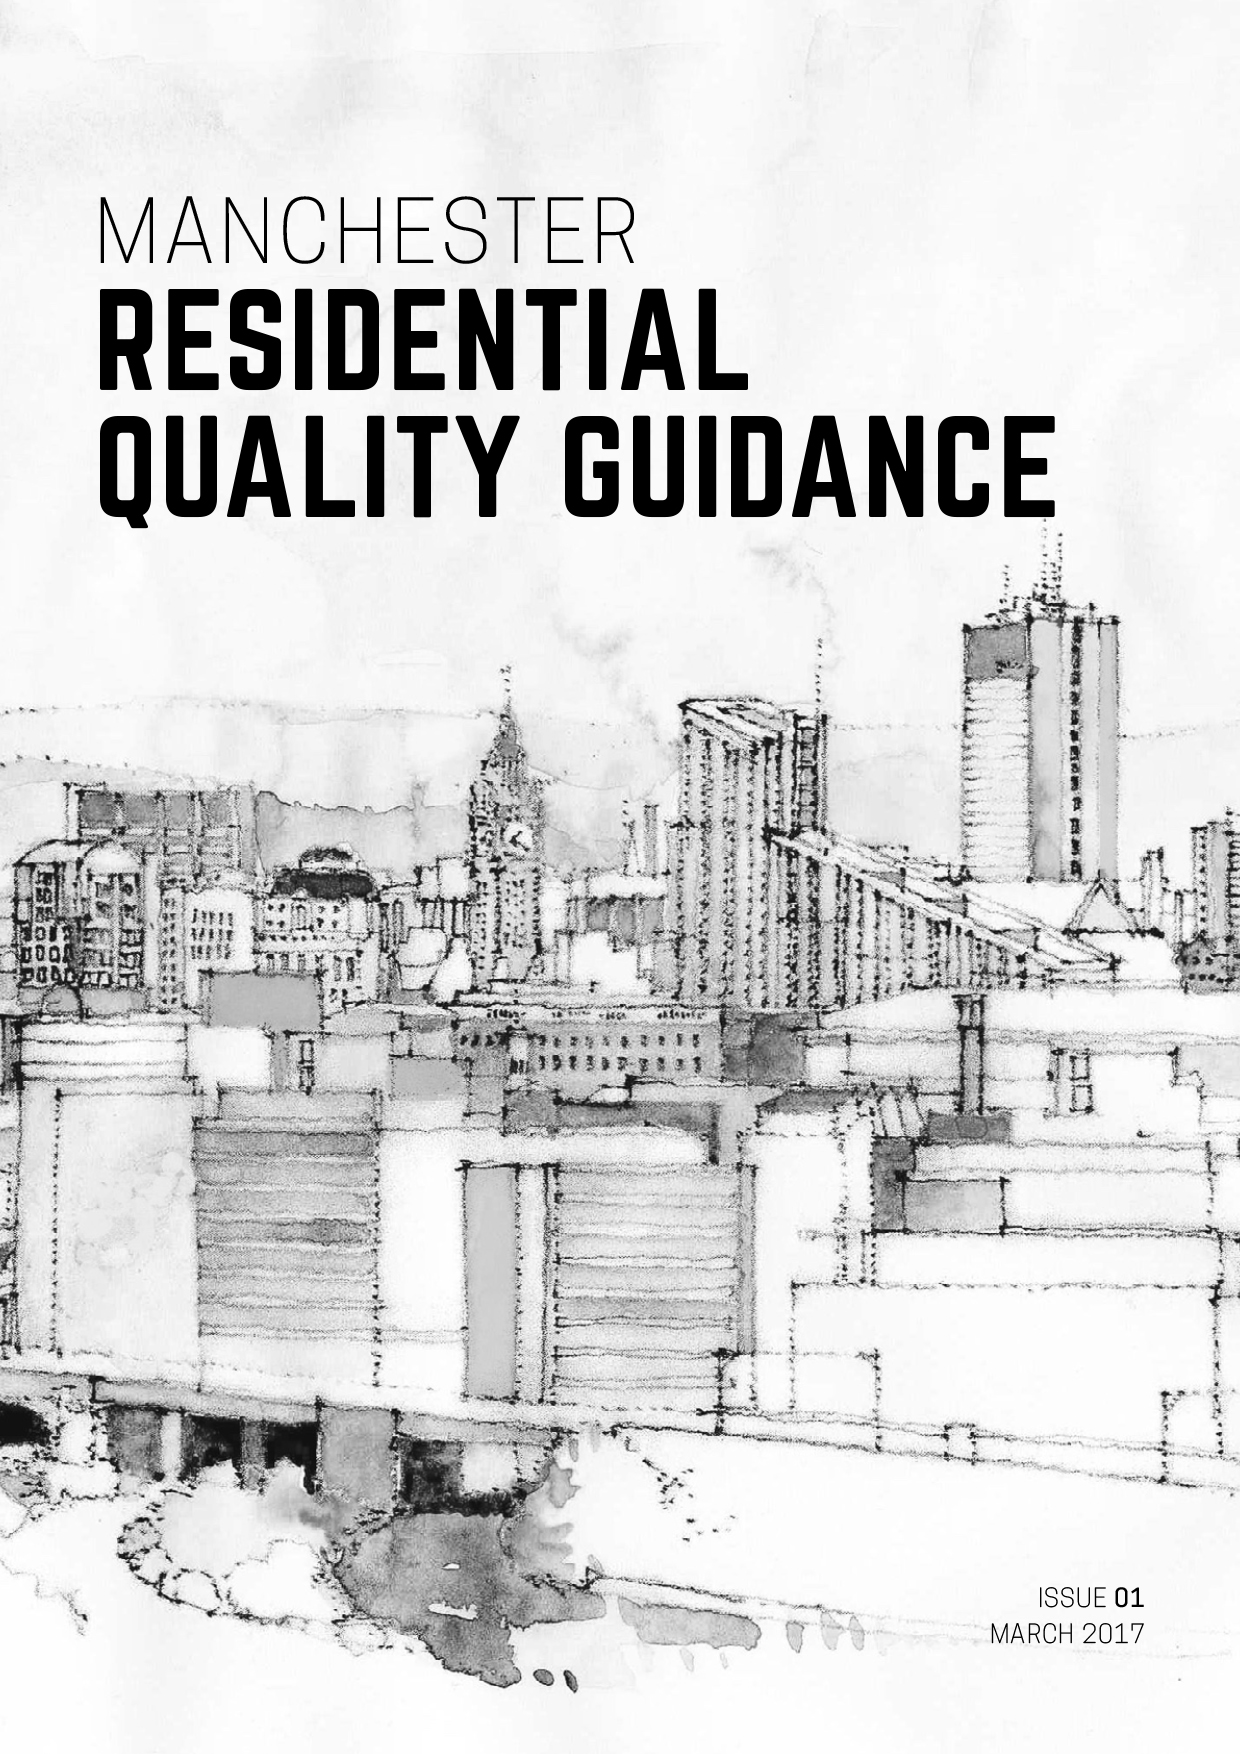 Manchester Residential Quality Guidance